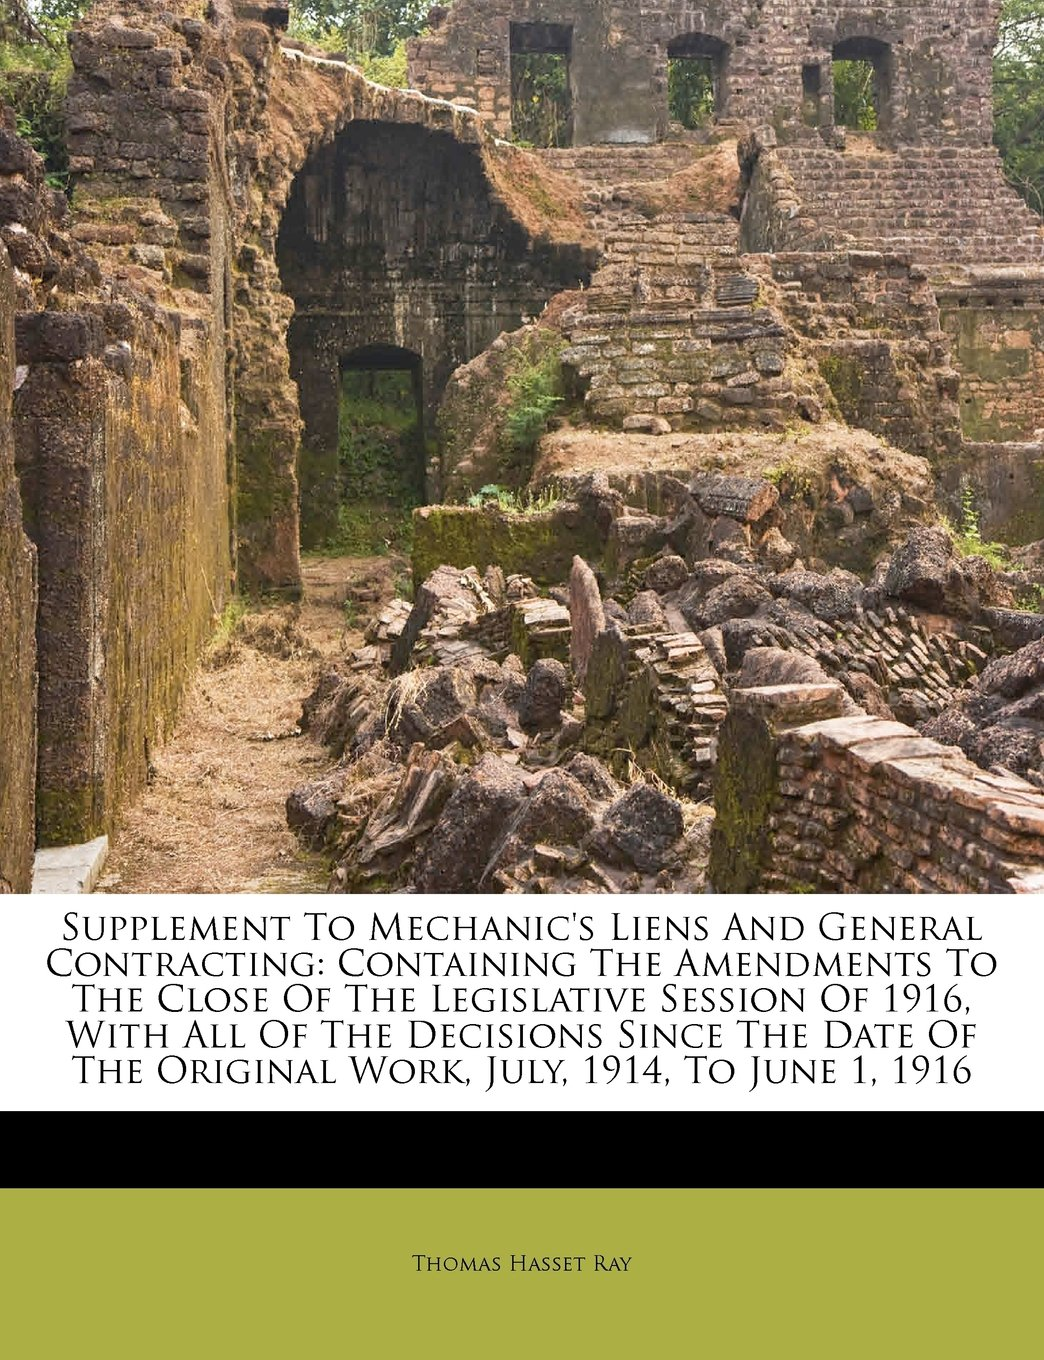 Supplement To Mechanic's Liens And General Contracting: Containing The Amendments To The Close Of The Legislative Session Of 1916, With All Of The ... Original Work, July, 1914, To June 1, 1916 pdf epub